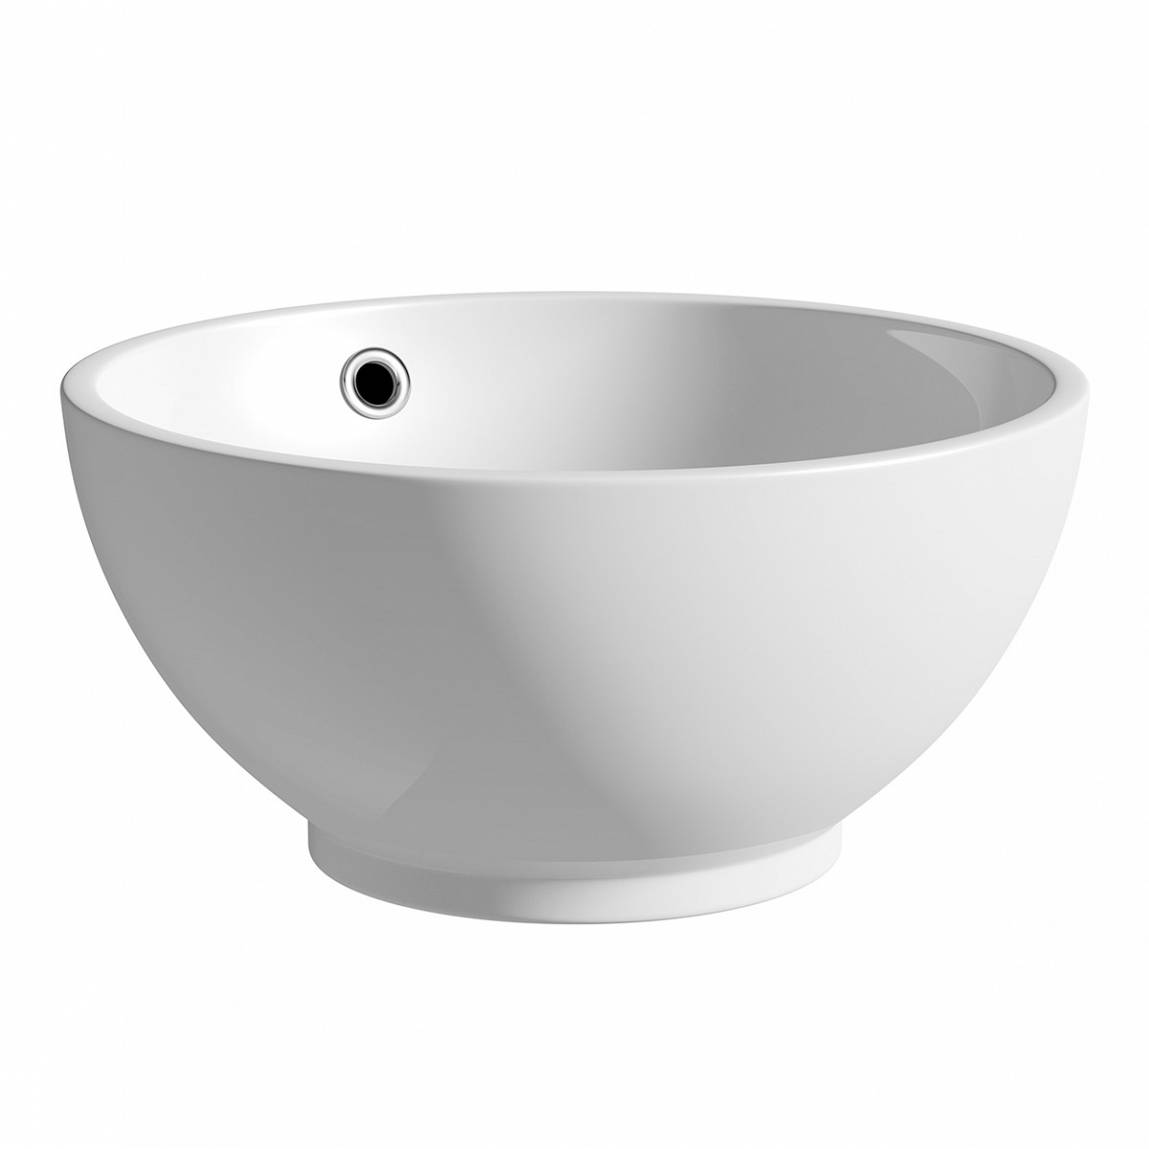 Image of Santos Counter Top Basin PLUS Waste